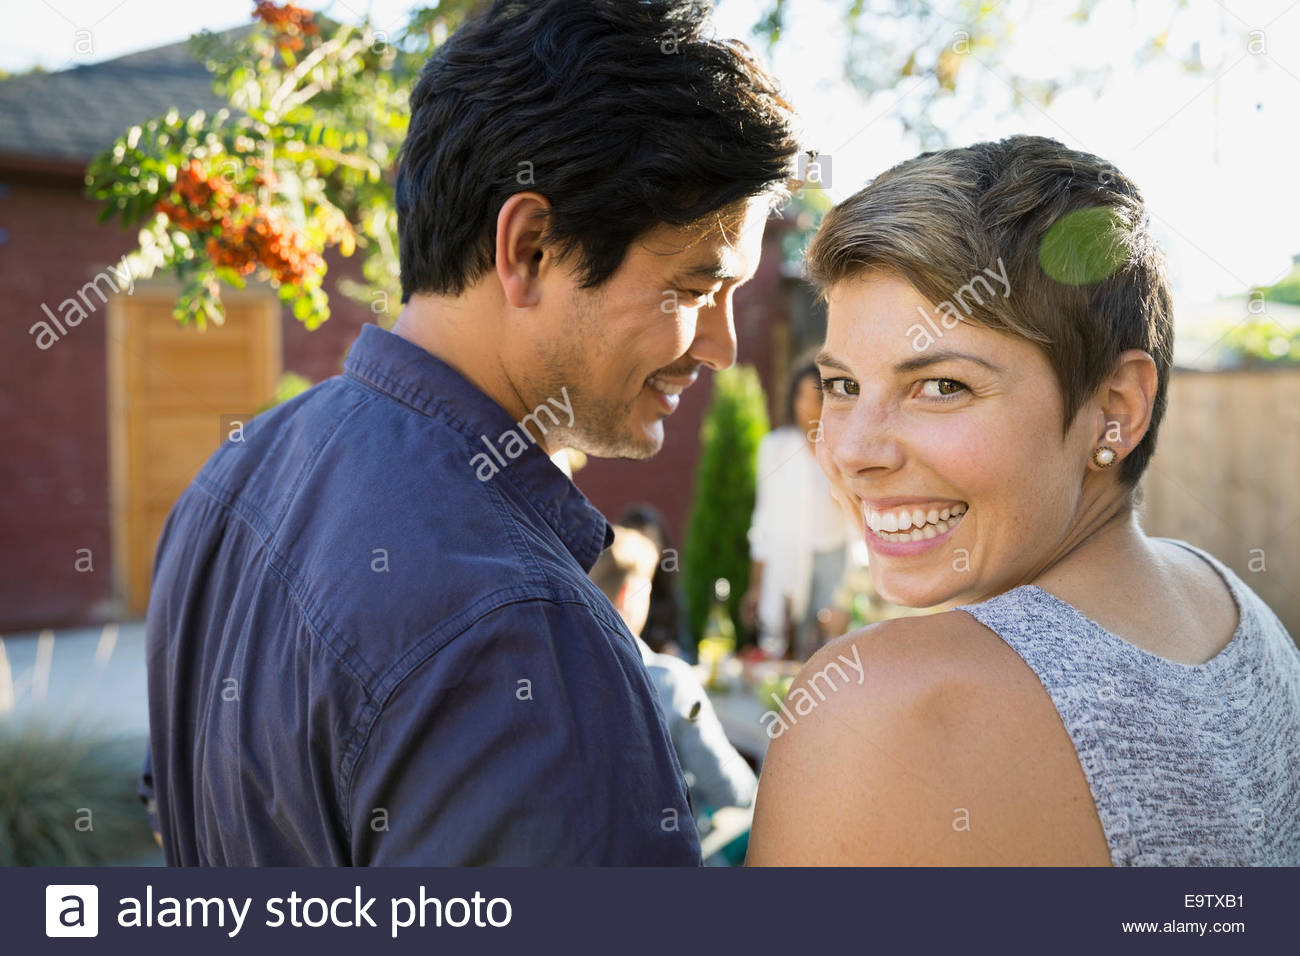 Portrait of smiling couple in backyard - Stock Image